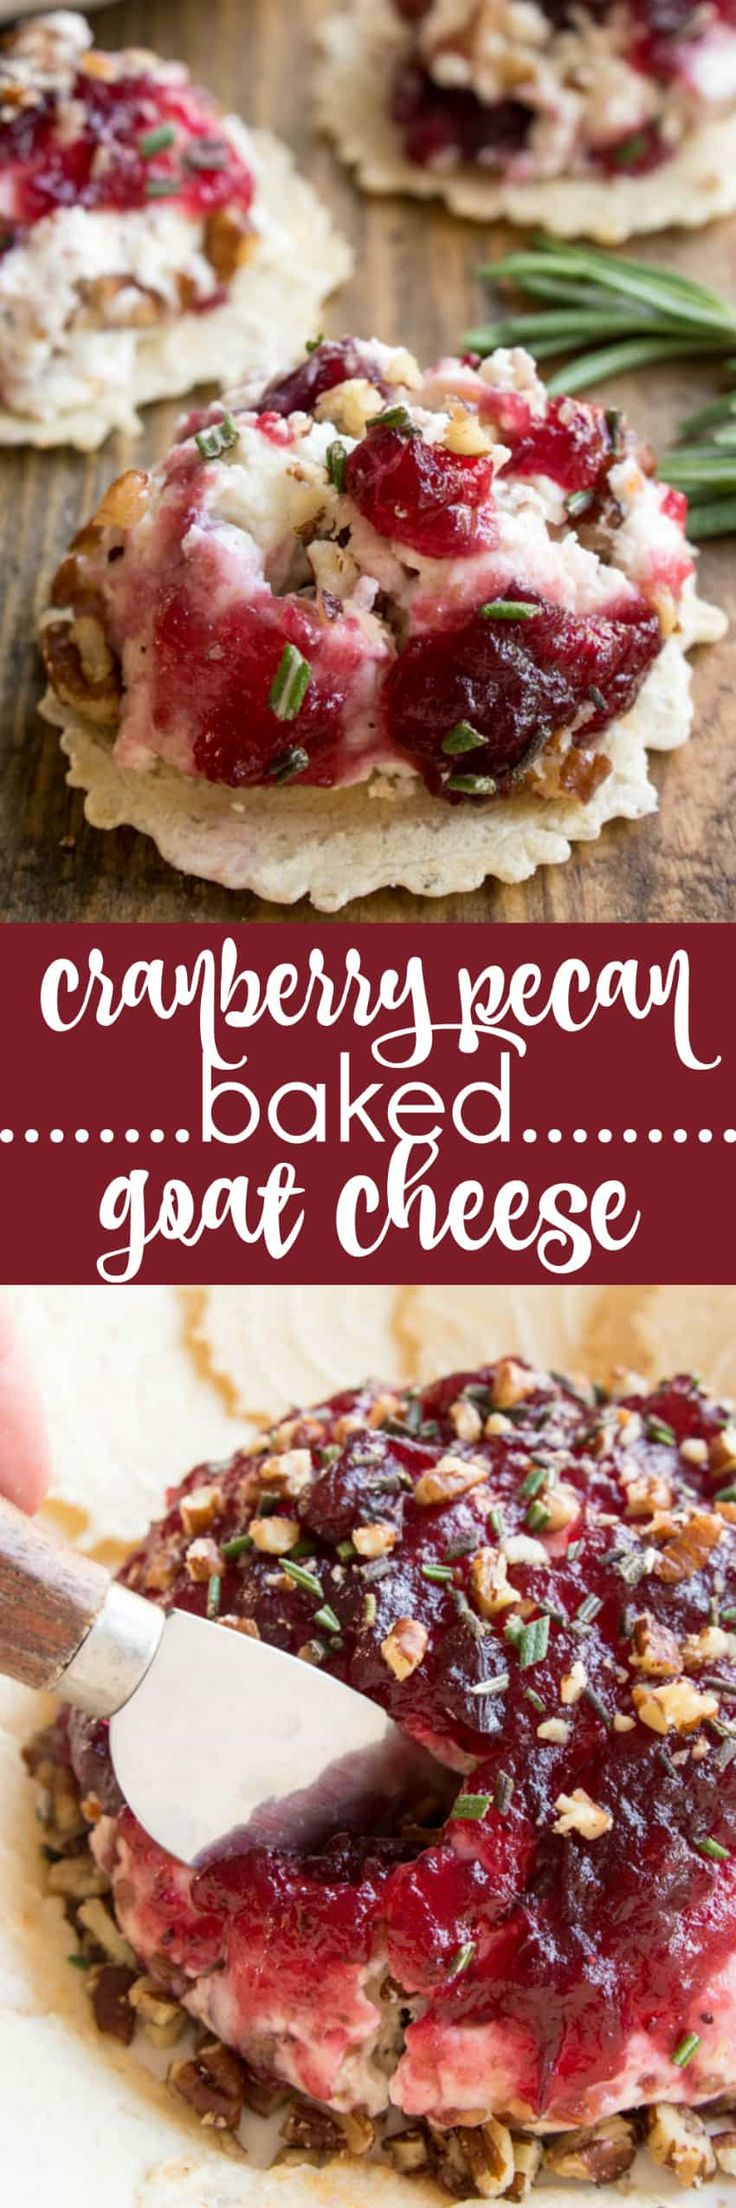 Take cheese & crackers to the next level with this Cranberry Pecan Baked Goat Cheese! Loaded with creamy goat cheese, crisp bacon, chopped pecans, cranberry sauce, and fresh rosemary, this is the ultimate holiday appetizer. The perfect blend of savory and sweet, and the perfect way to elevate your next cocktail party or holiday gathering. #ad #gatherround34 @34degrees